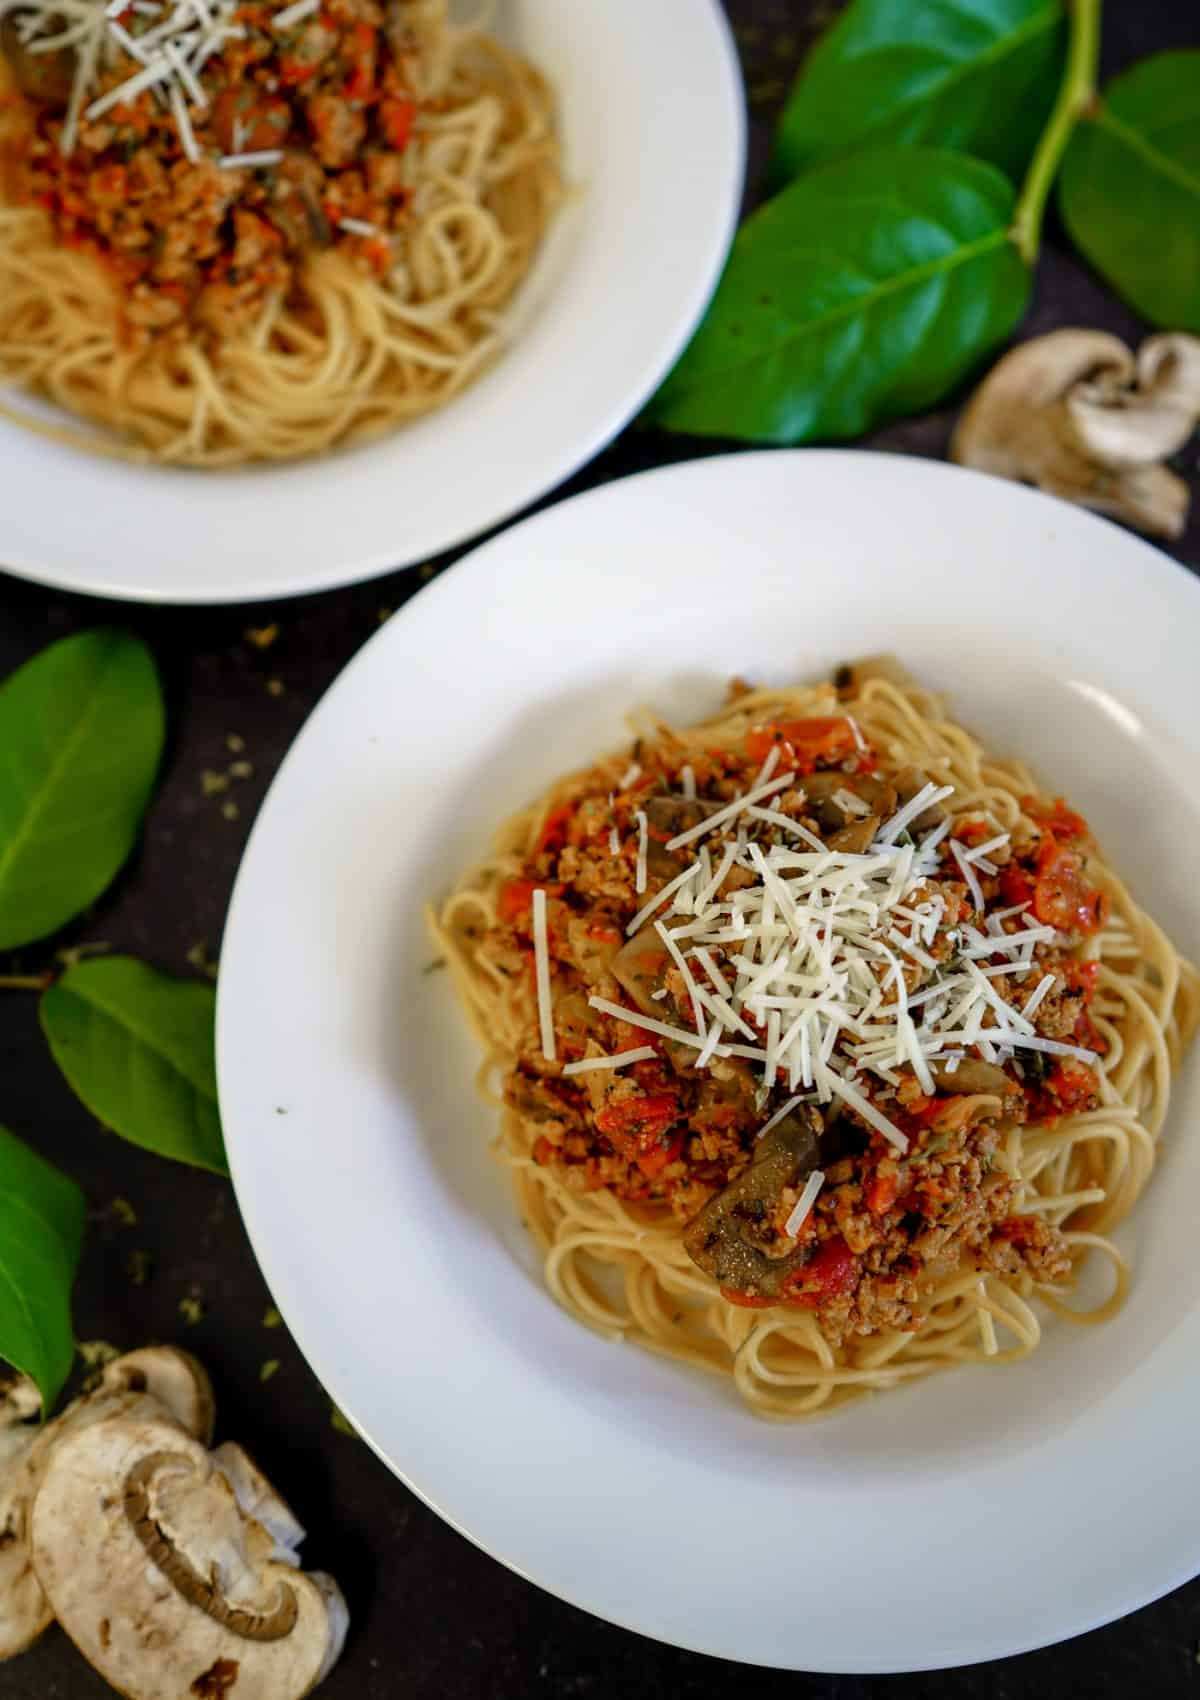 Instant Pot Bolognese, anyone?  t's cold outside!  Warm up with this most delicious Instant Pot Bolognese recipe!  I can almost guarantee it will quickly become a family favorite! This Instant Pot Bolognese recipe is dairy-free, grain-free and Whole30 friendly. Try this Instant Pot pasta recipe today and let me know what you think!